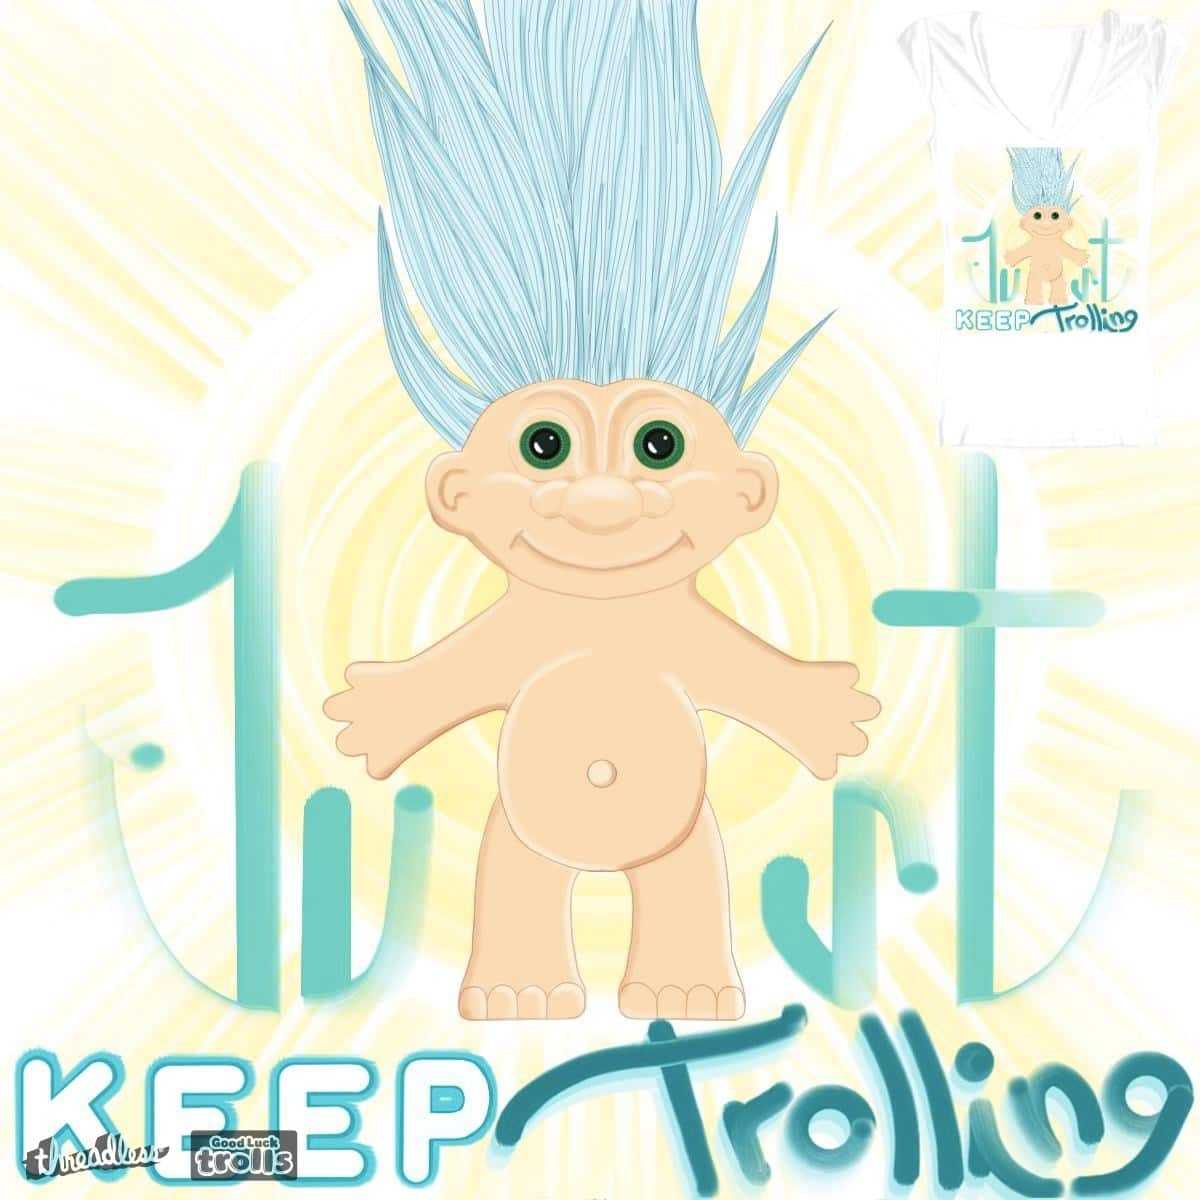 Score Just Keep Trolling by ecy96 on Threadless